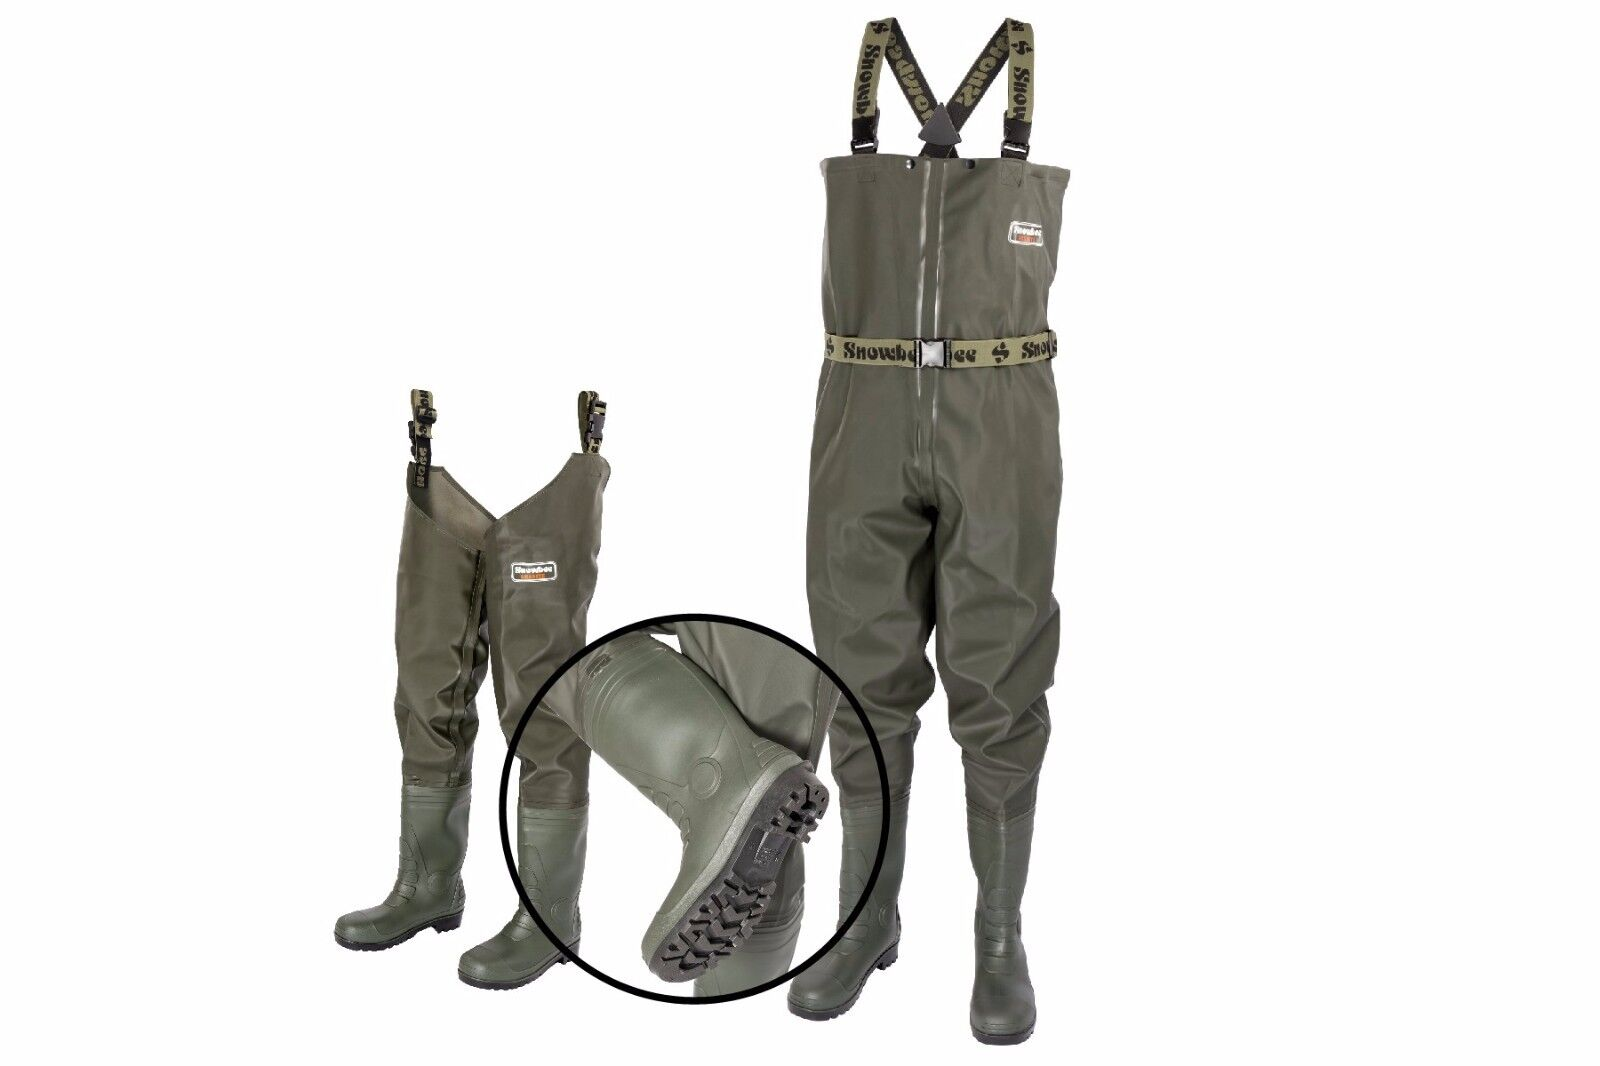 Snowbee Heavy Duty GRANITE PVC Chest Waders & Thigh Waders with cleated sole